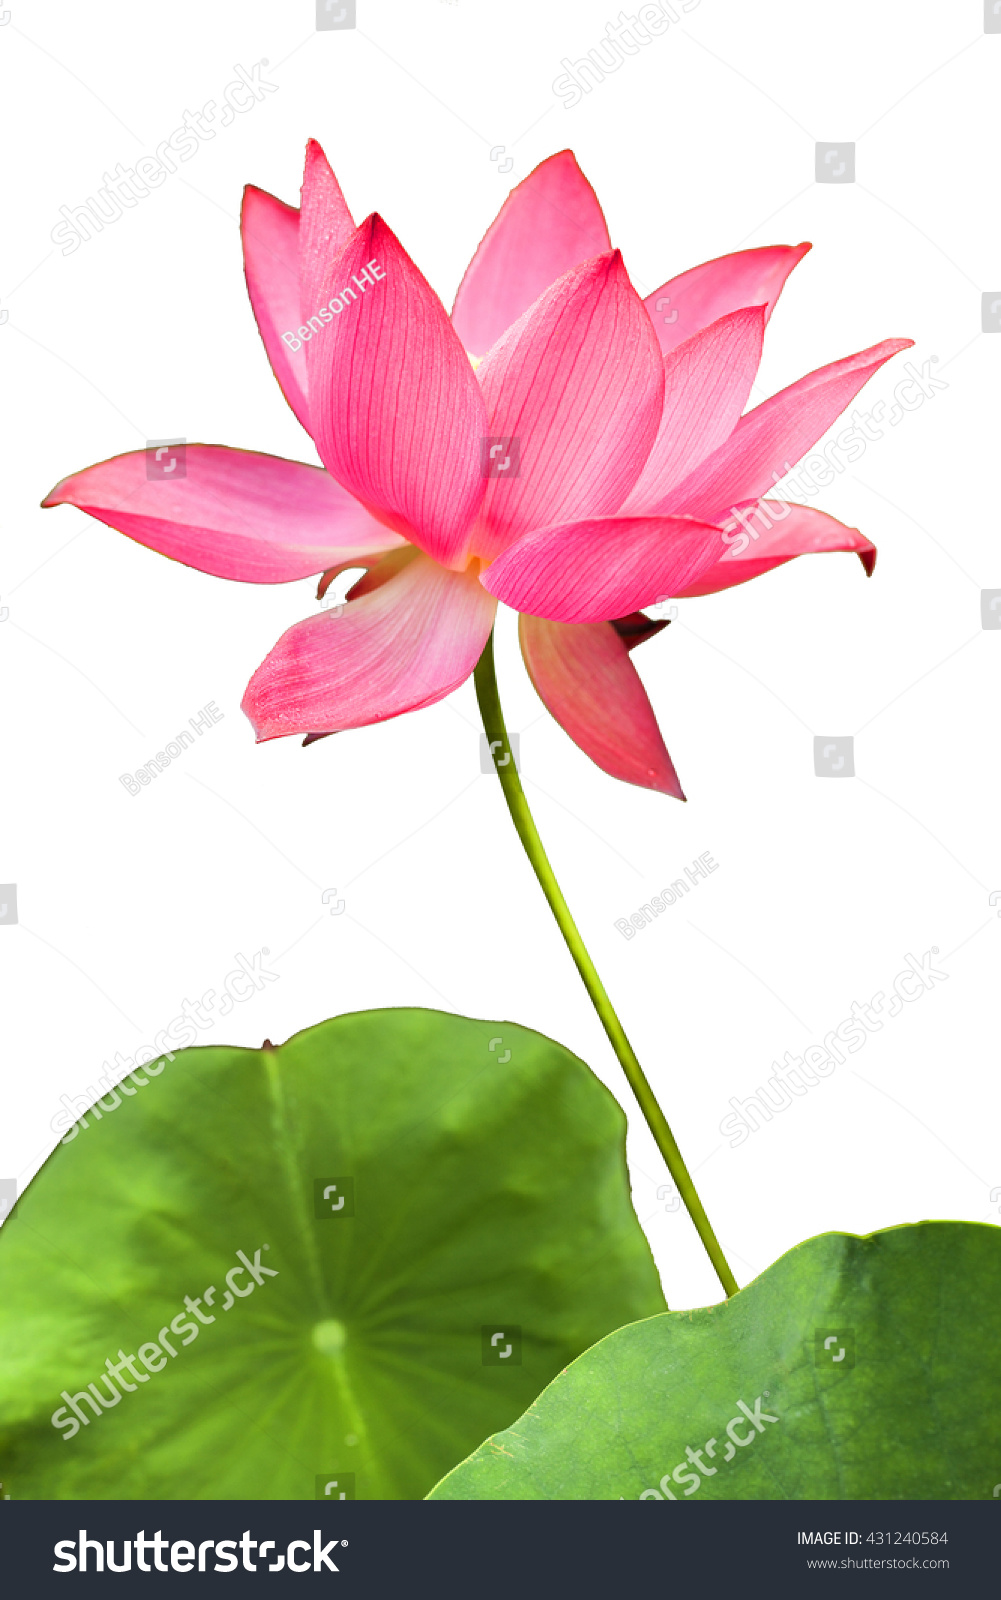 Red lotus flower blossom green stem stock photo edit now 431240584 a red lotus flower in blossom with green stem and foliage isolated izmirmasajfo